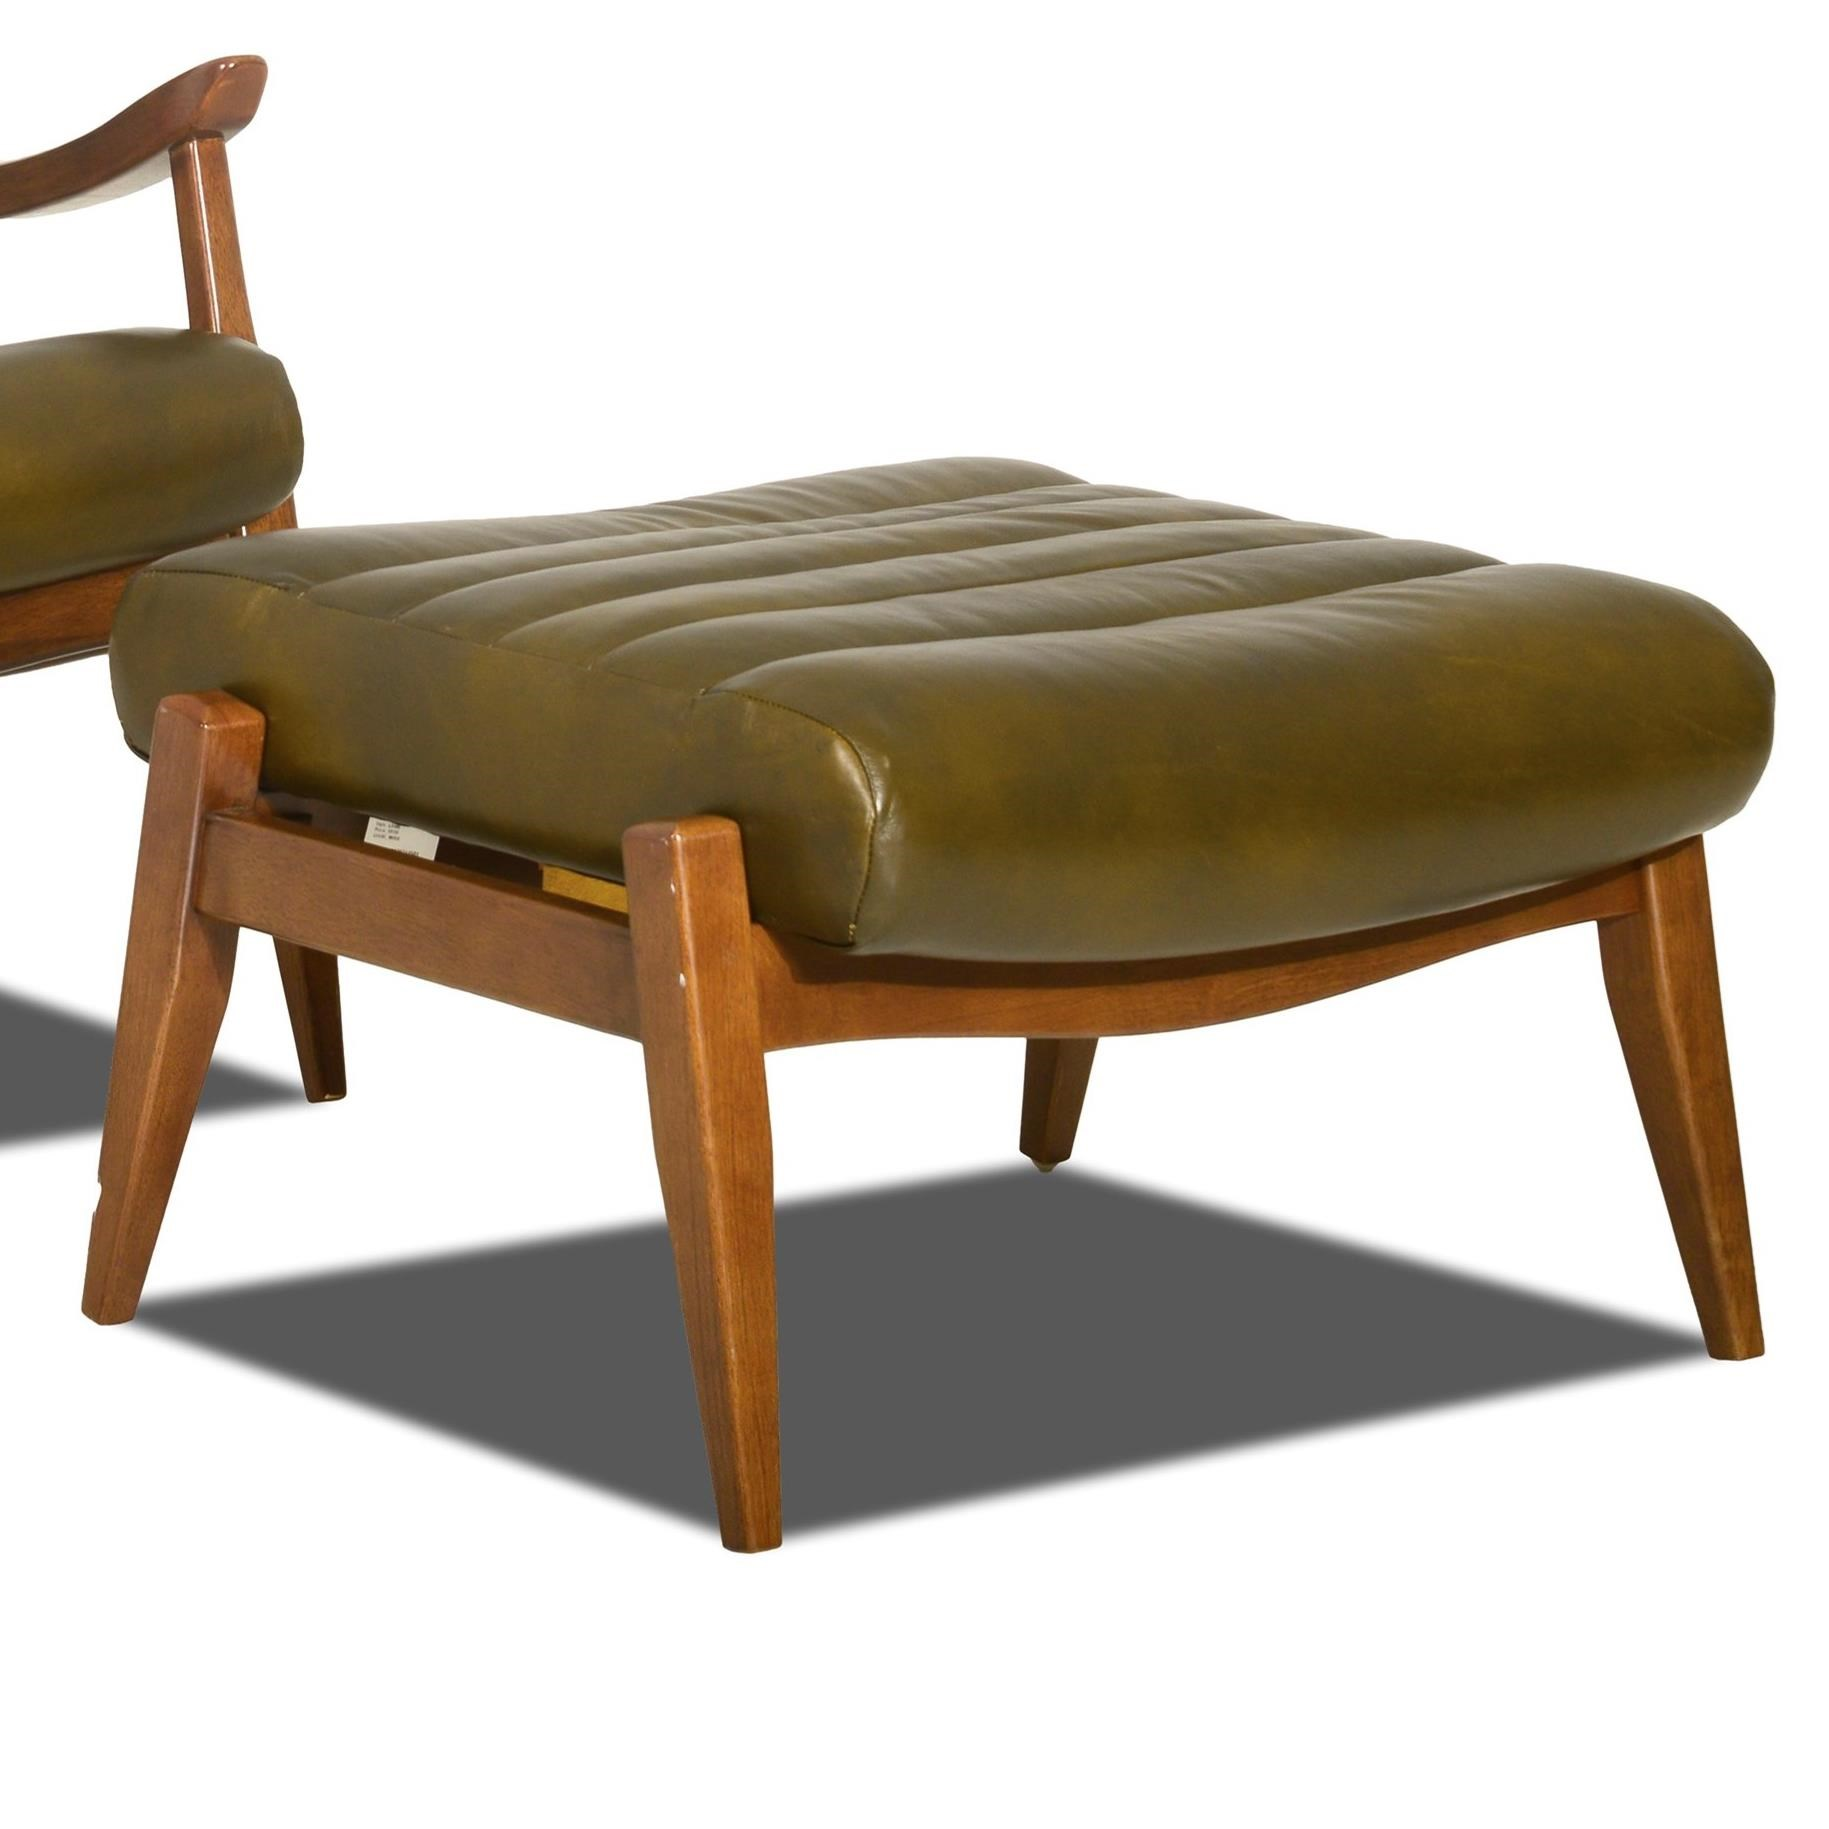 Klaussner Chairs And Accents Hans Mid Century Modern Ottoman With Scandinavian Style Exposed Wood Value City Furniture Exposed Wood Chairs